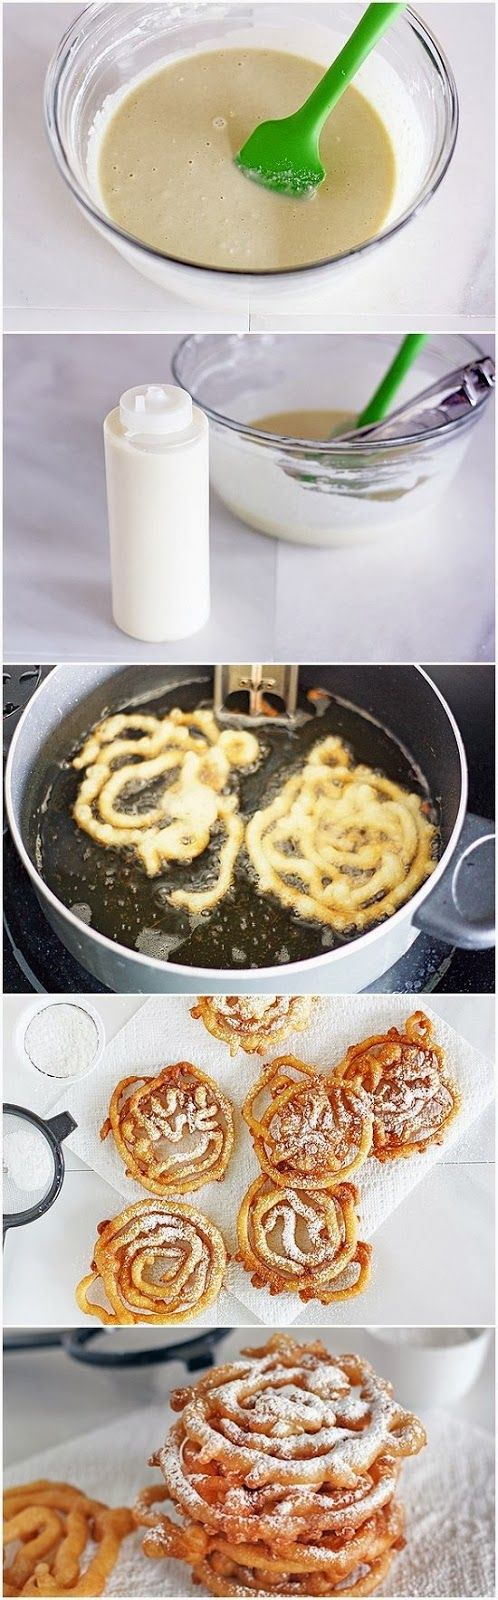 DIY Mini Funnel Cakes ...pancake mix, squirt bottle & oil deep enough for the mix to float in while frying.